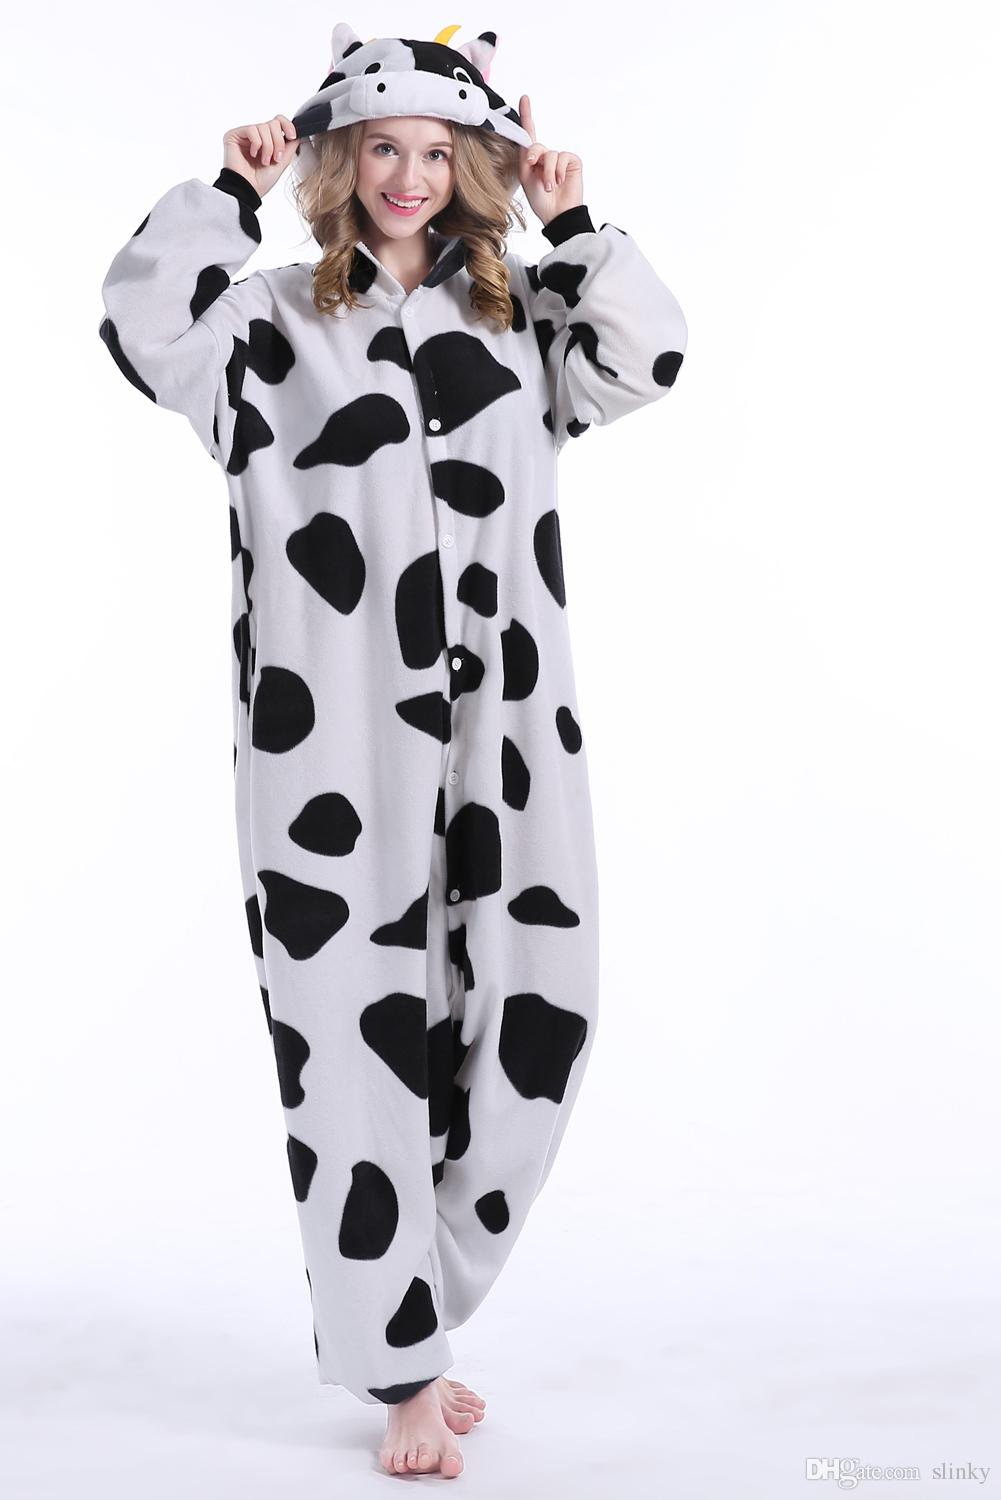 2019 Stock 2018 Cow Warm Kigurumi Pajamas Animal Suits Cosplay Halloween  Costume Adult Garment Cartoon Jumpsuits Unisex Animal Sleepwear From  Slinky 5ef52756c9990